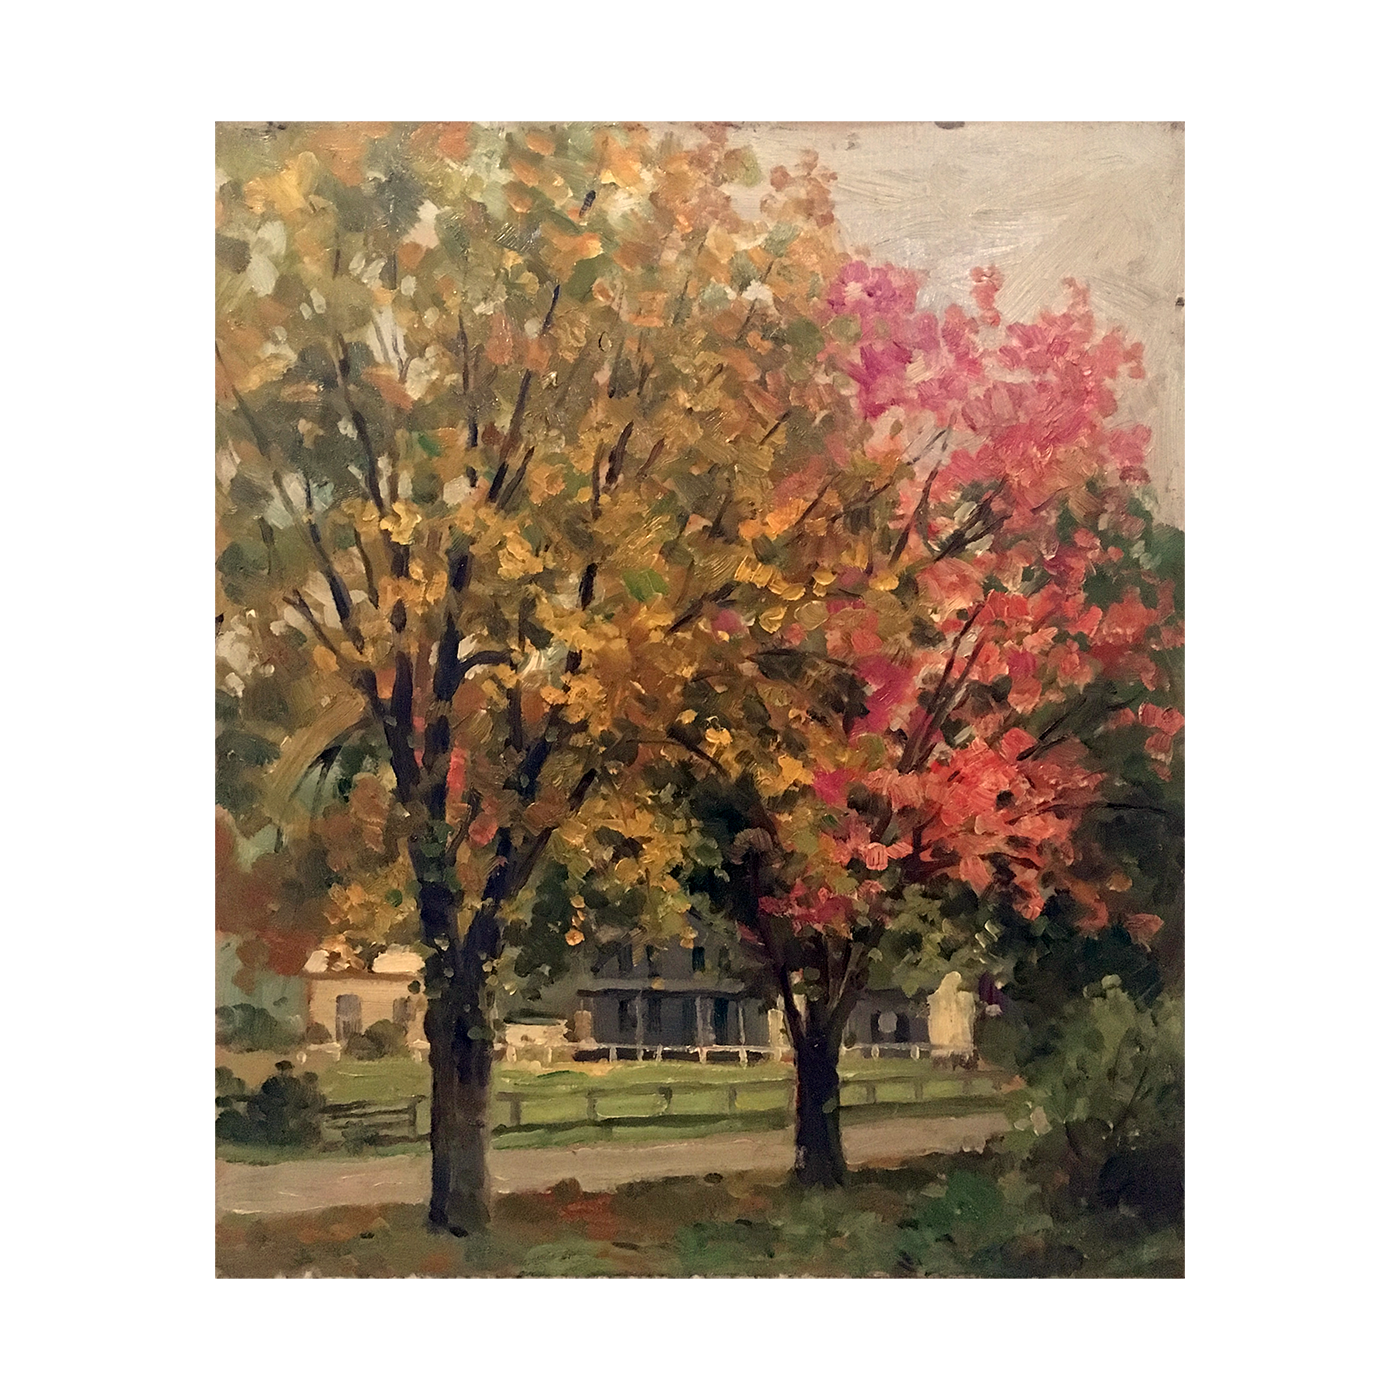 American school landscape painting : Fall landscape, 20th-century.